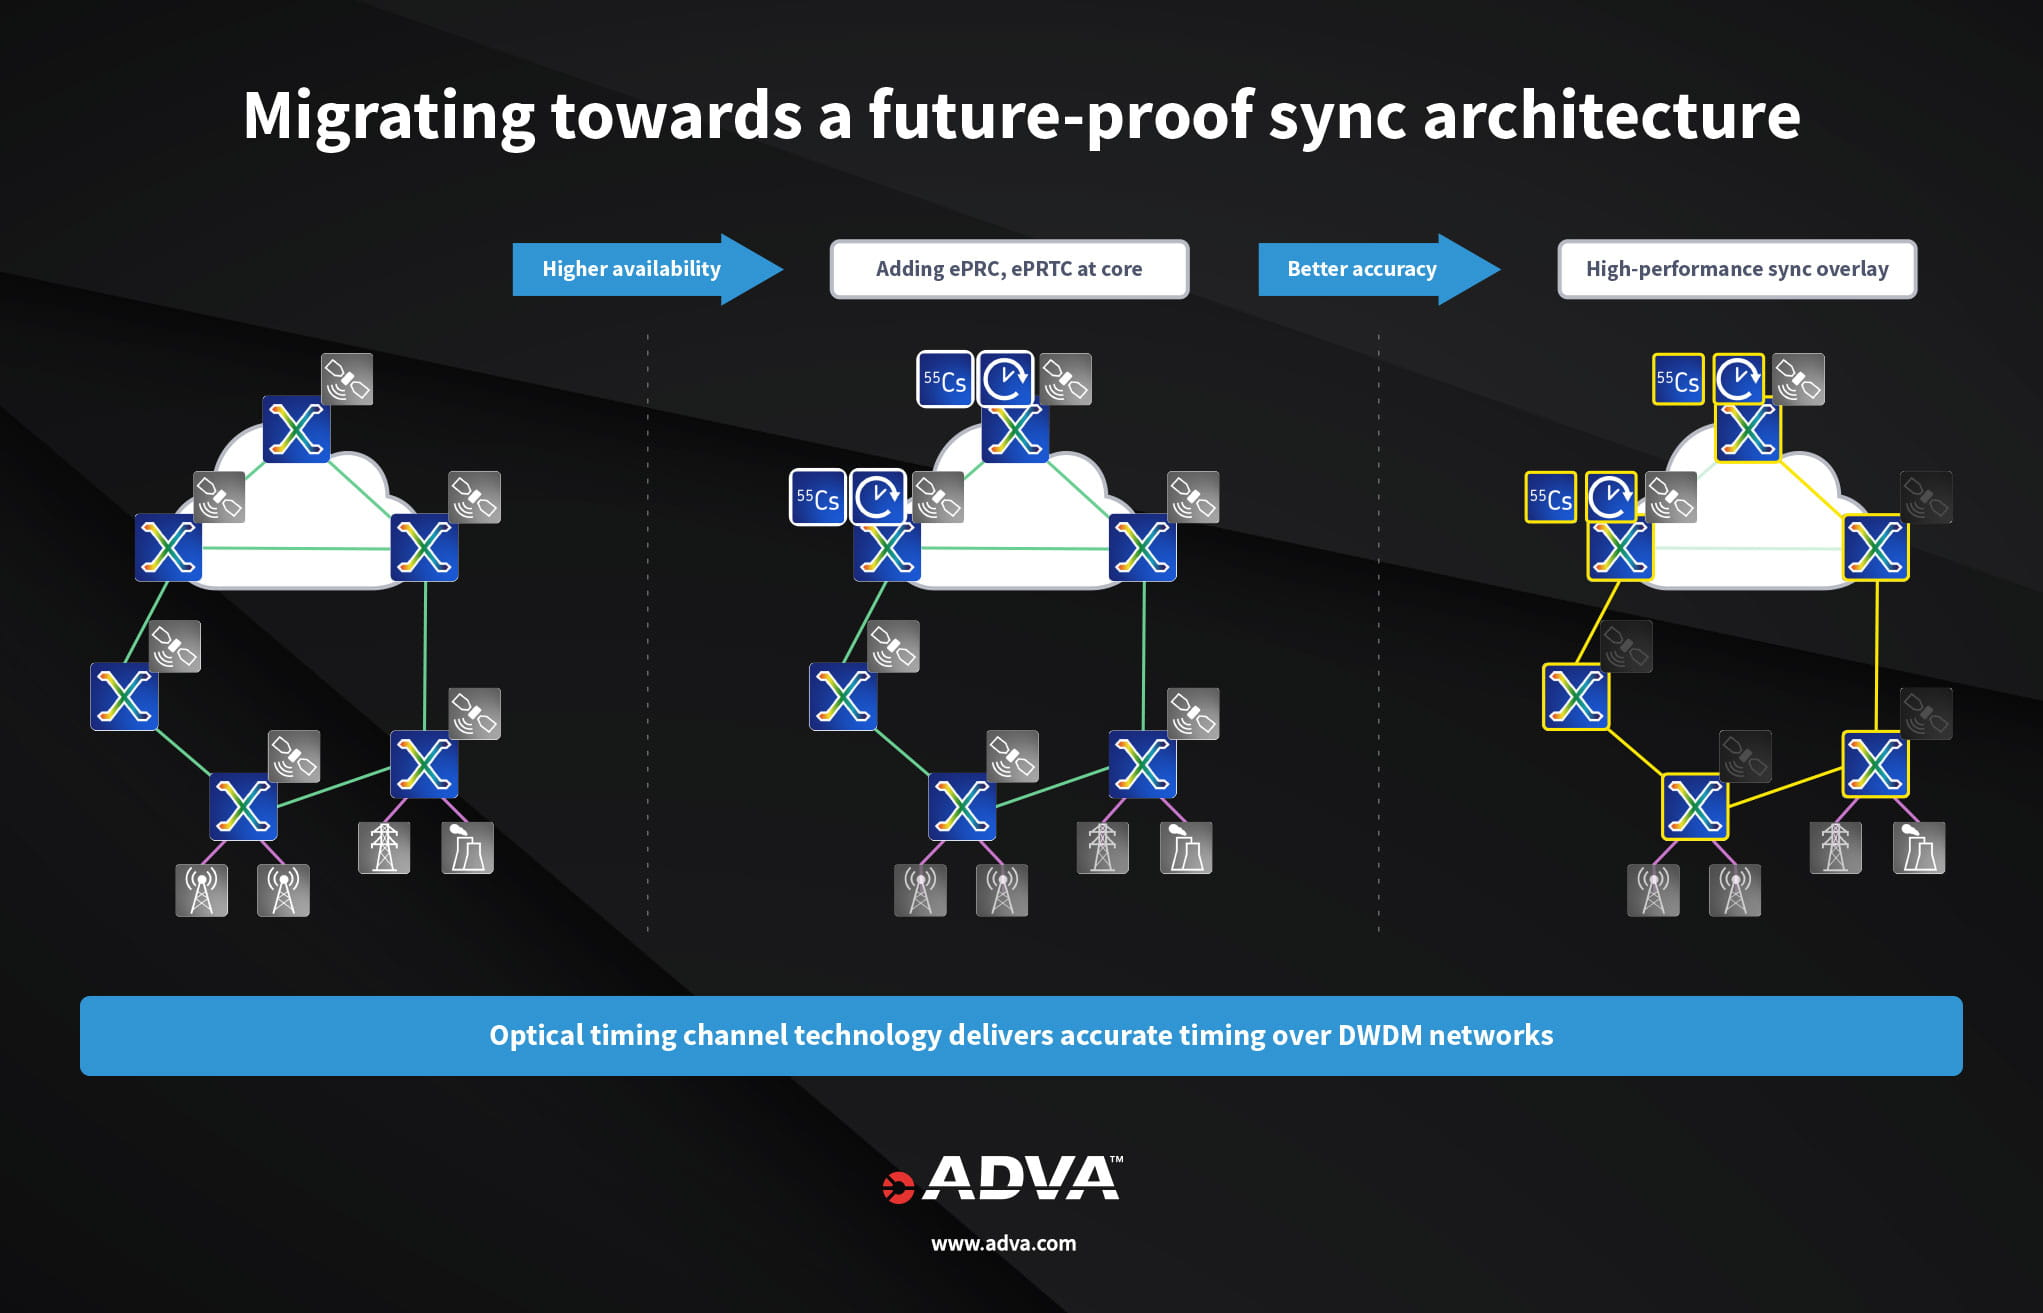 Migrating towards a future-proof sync architecture diagram